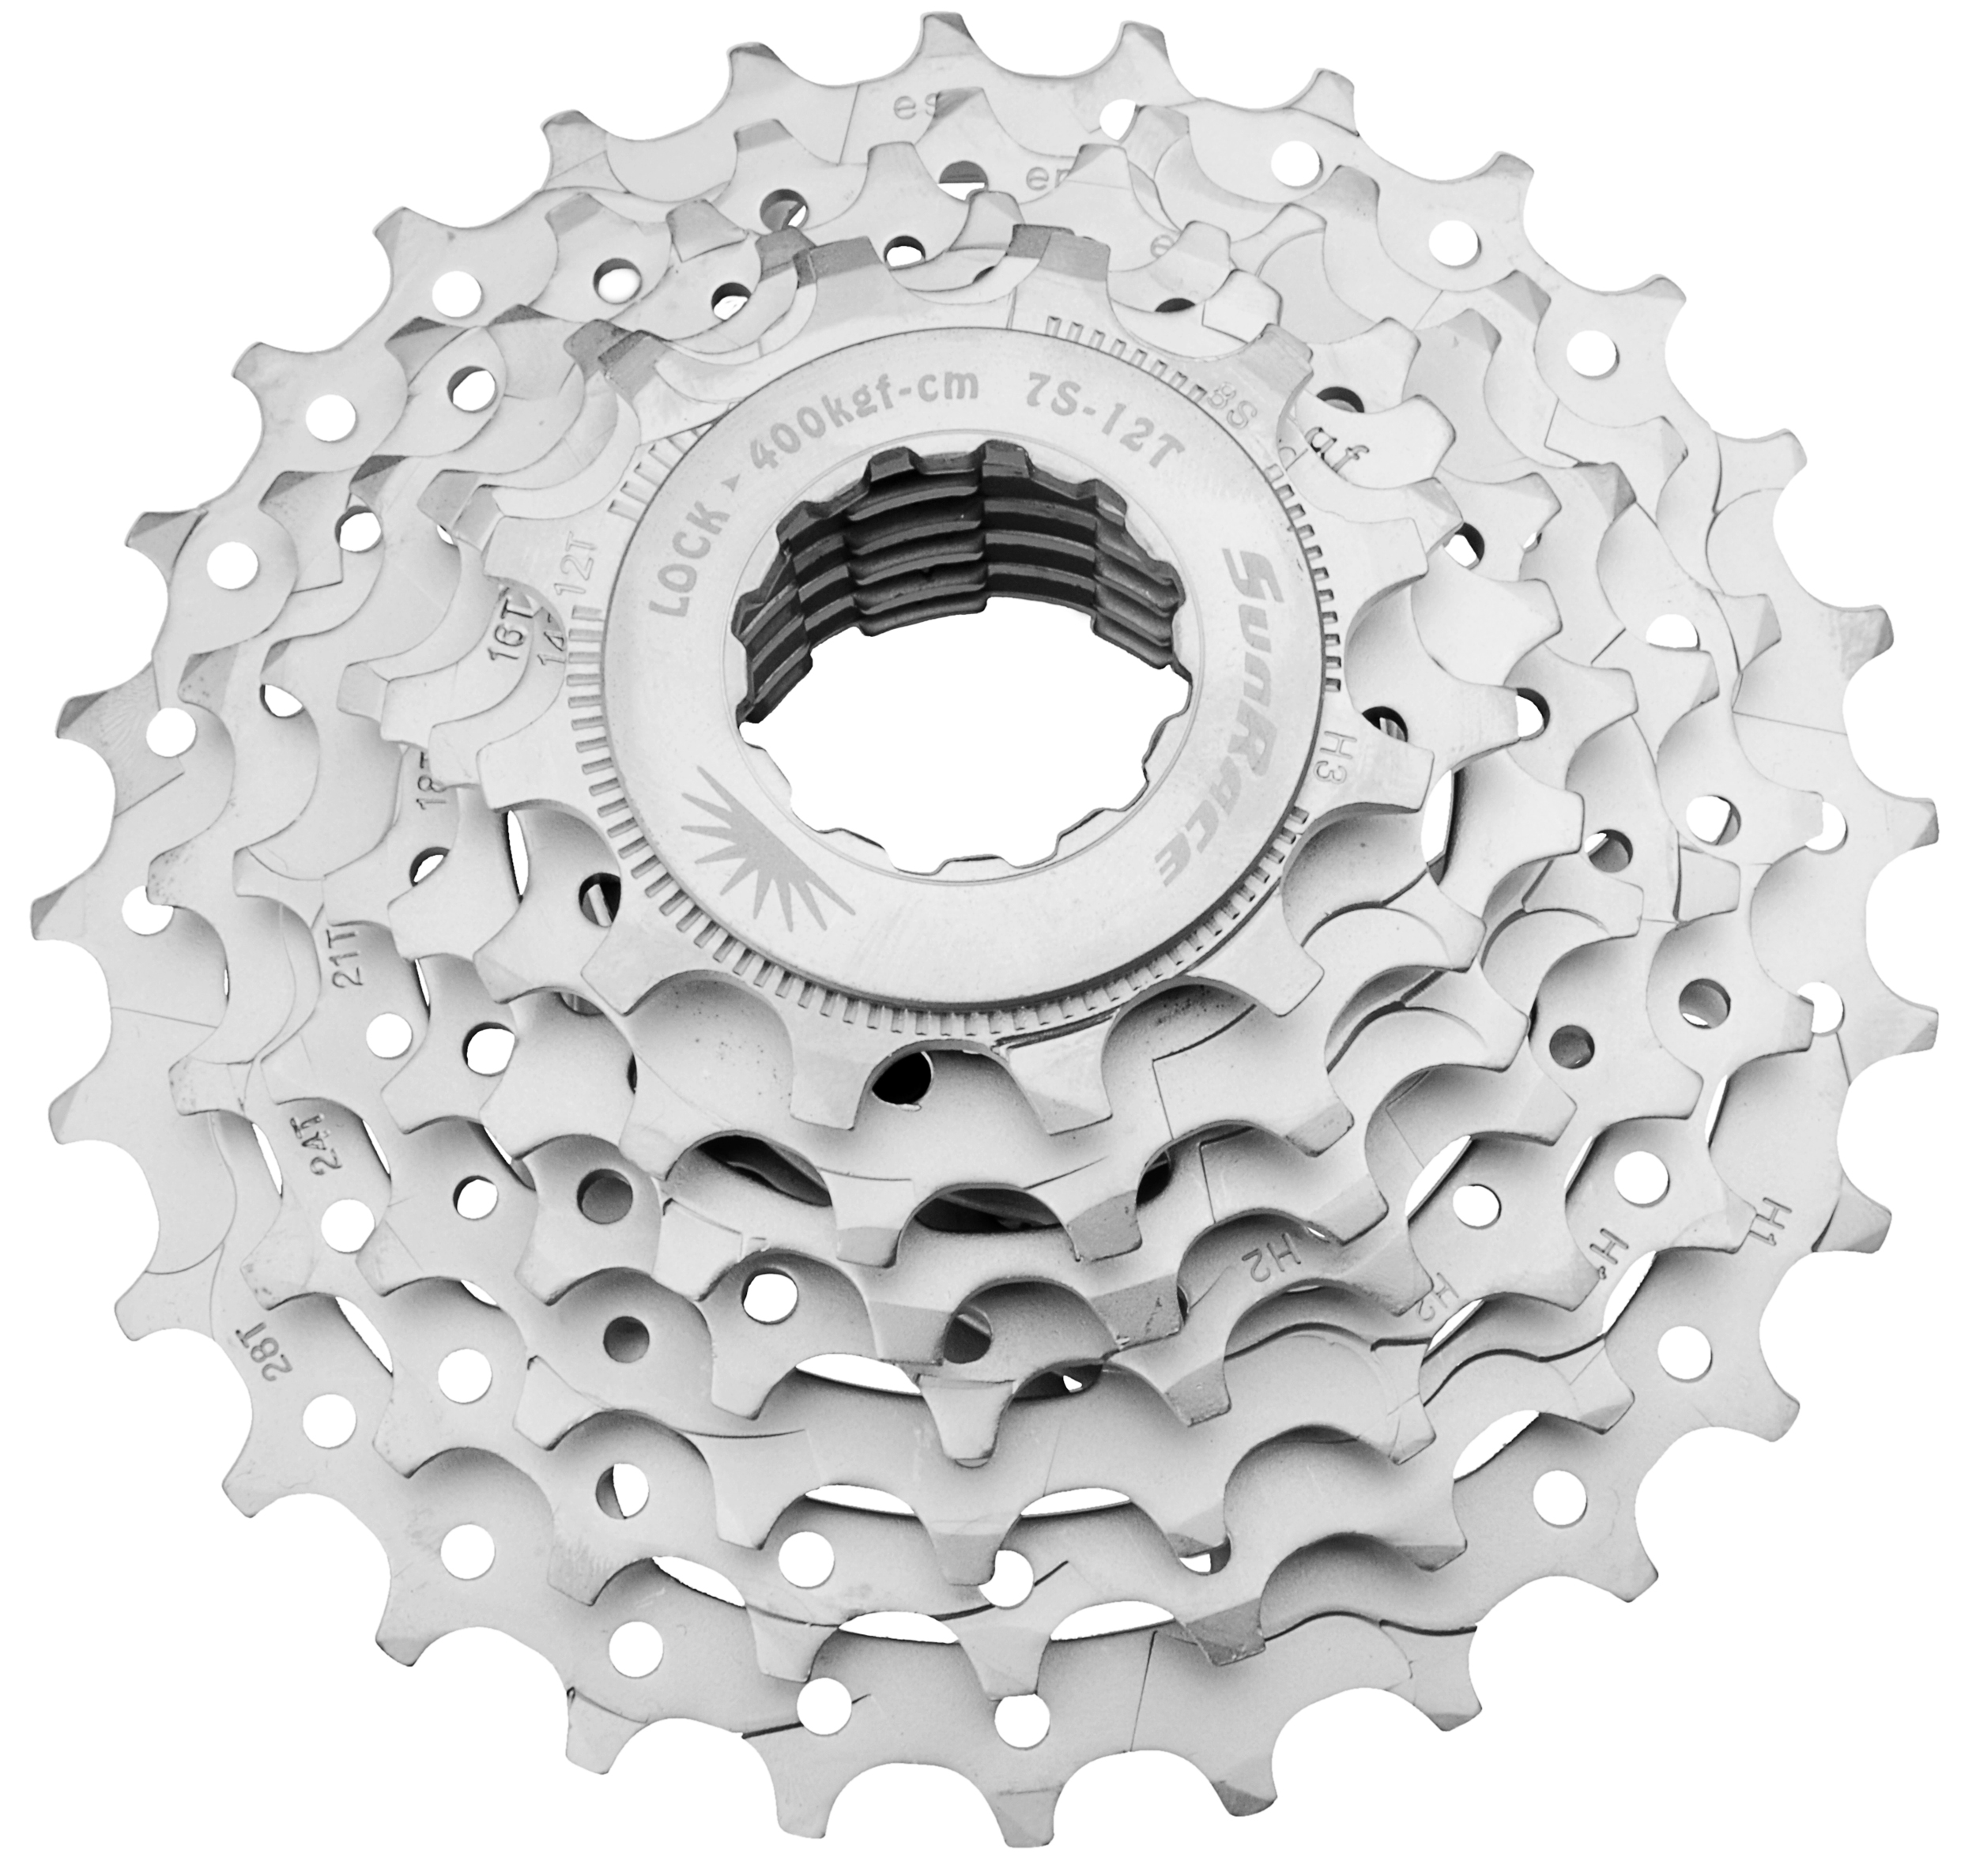 Cassettes And Freewheels For Cycling Sproket 8 Speed Shimano Hg 31 11 34t